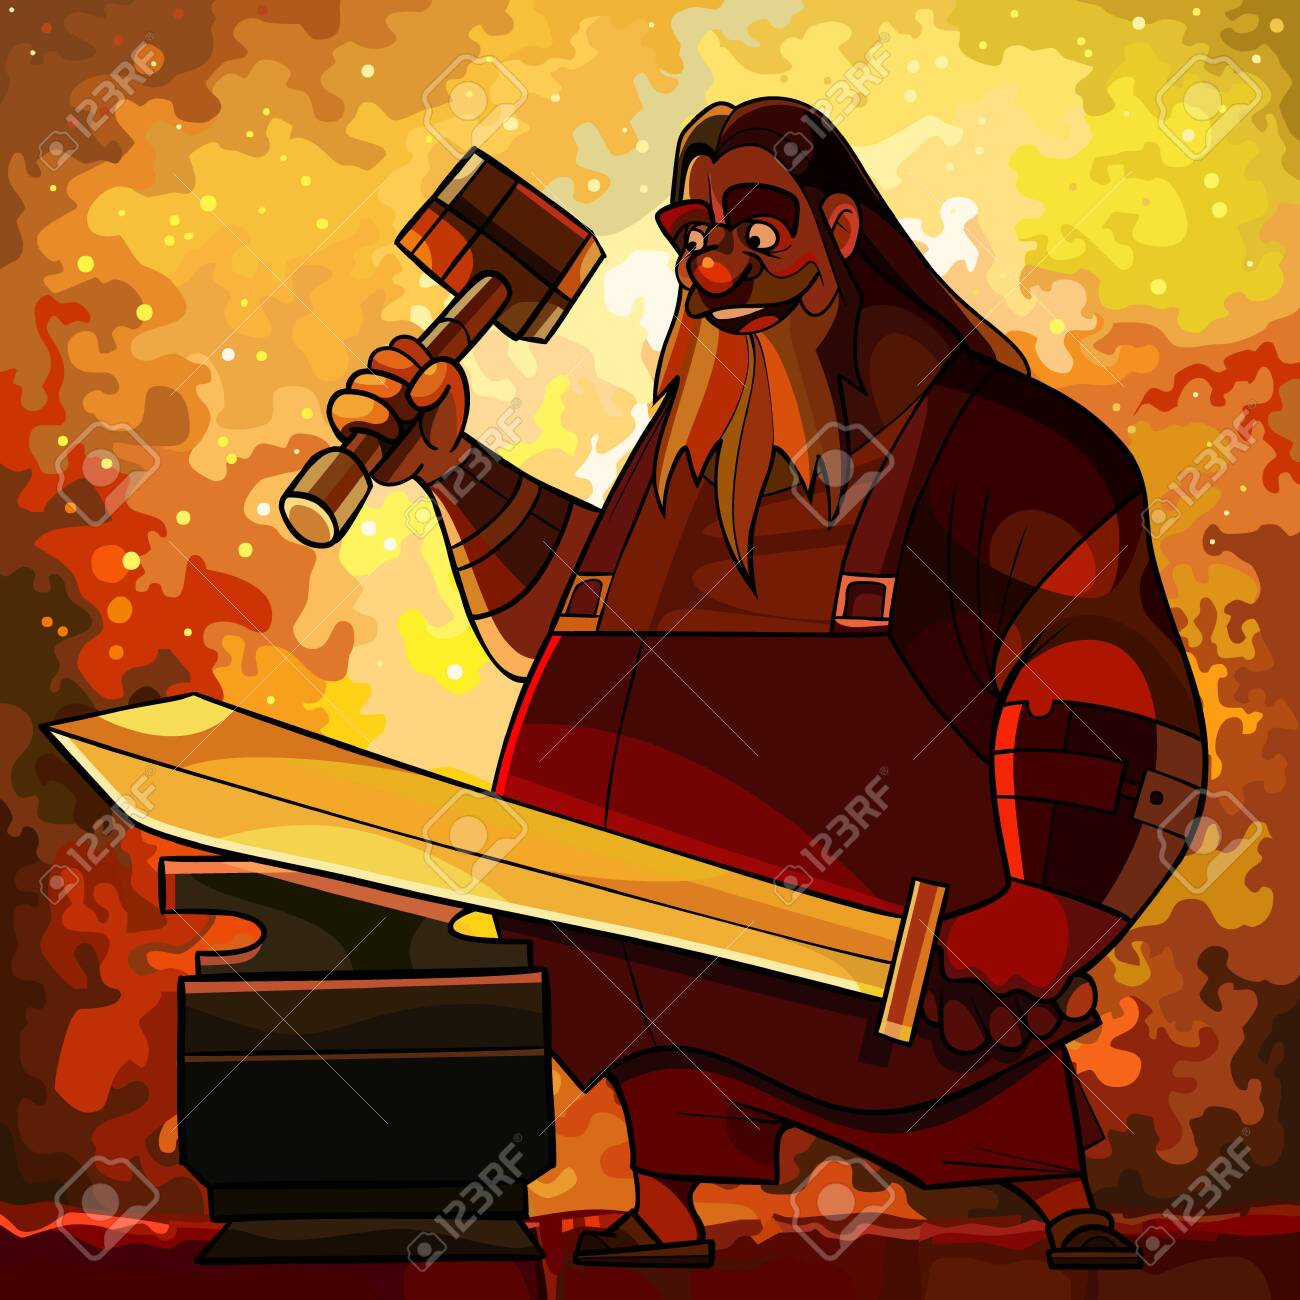 Cartoon bearded man blacksmith forges a sword in a fire forge. Vector image - 149942511